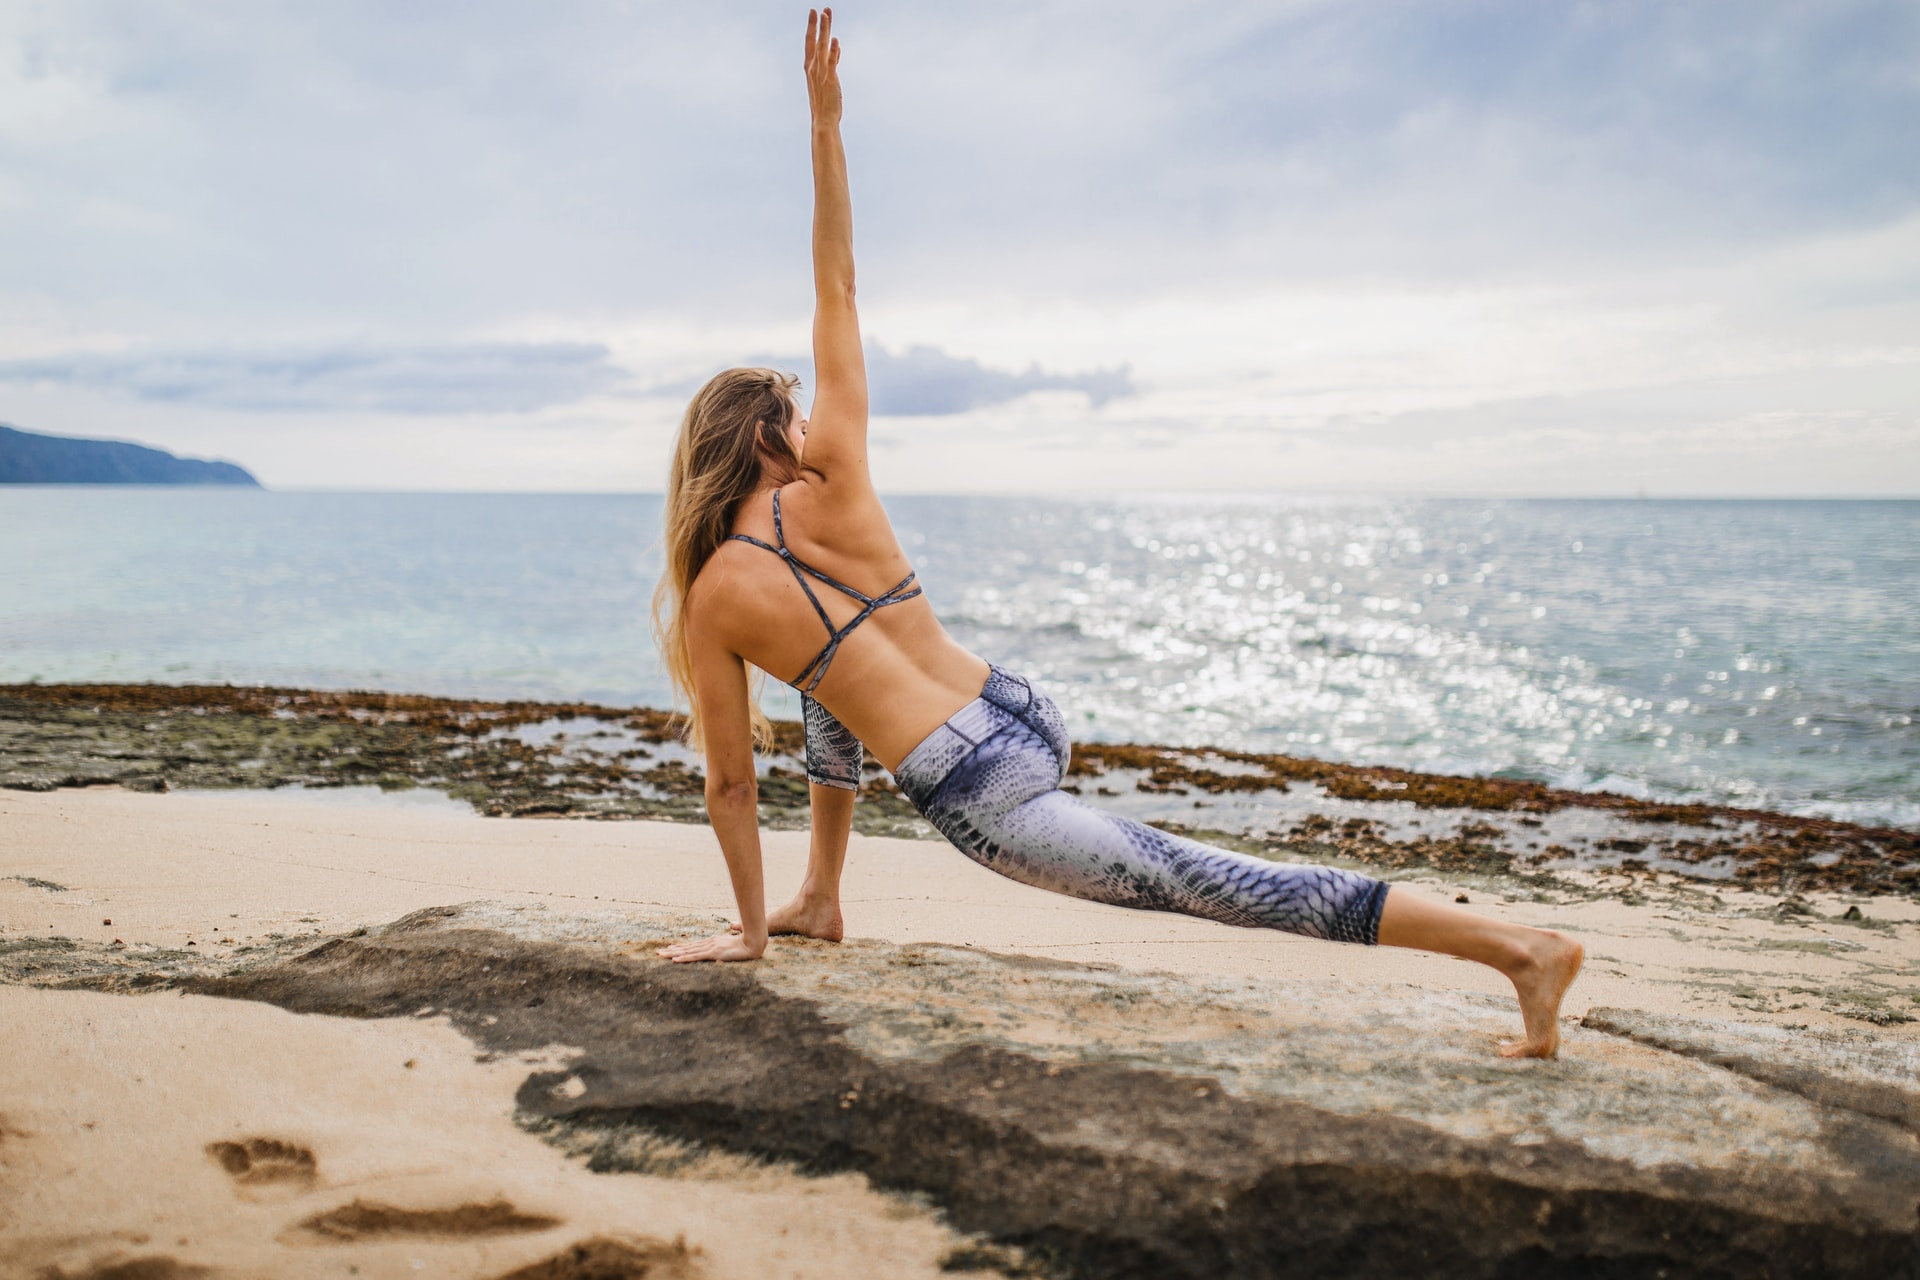 Create one fitness goal at a time